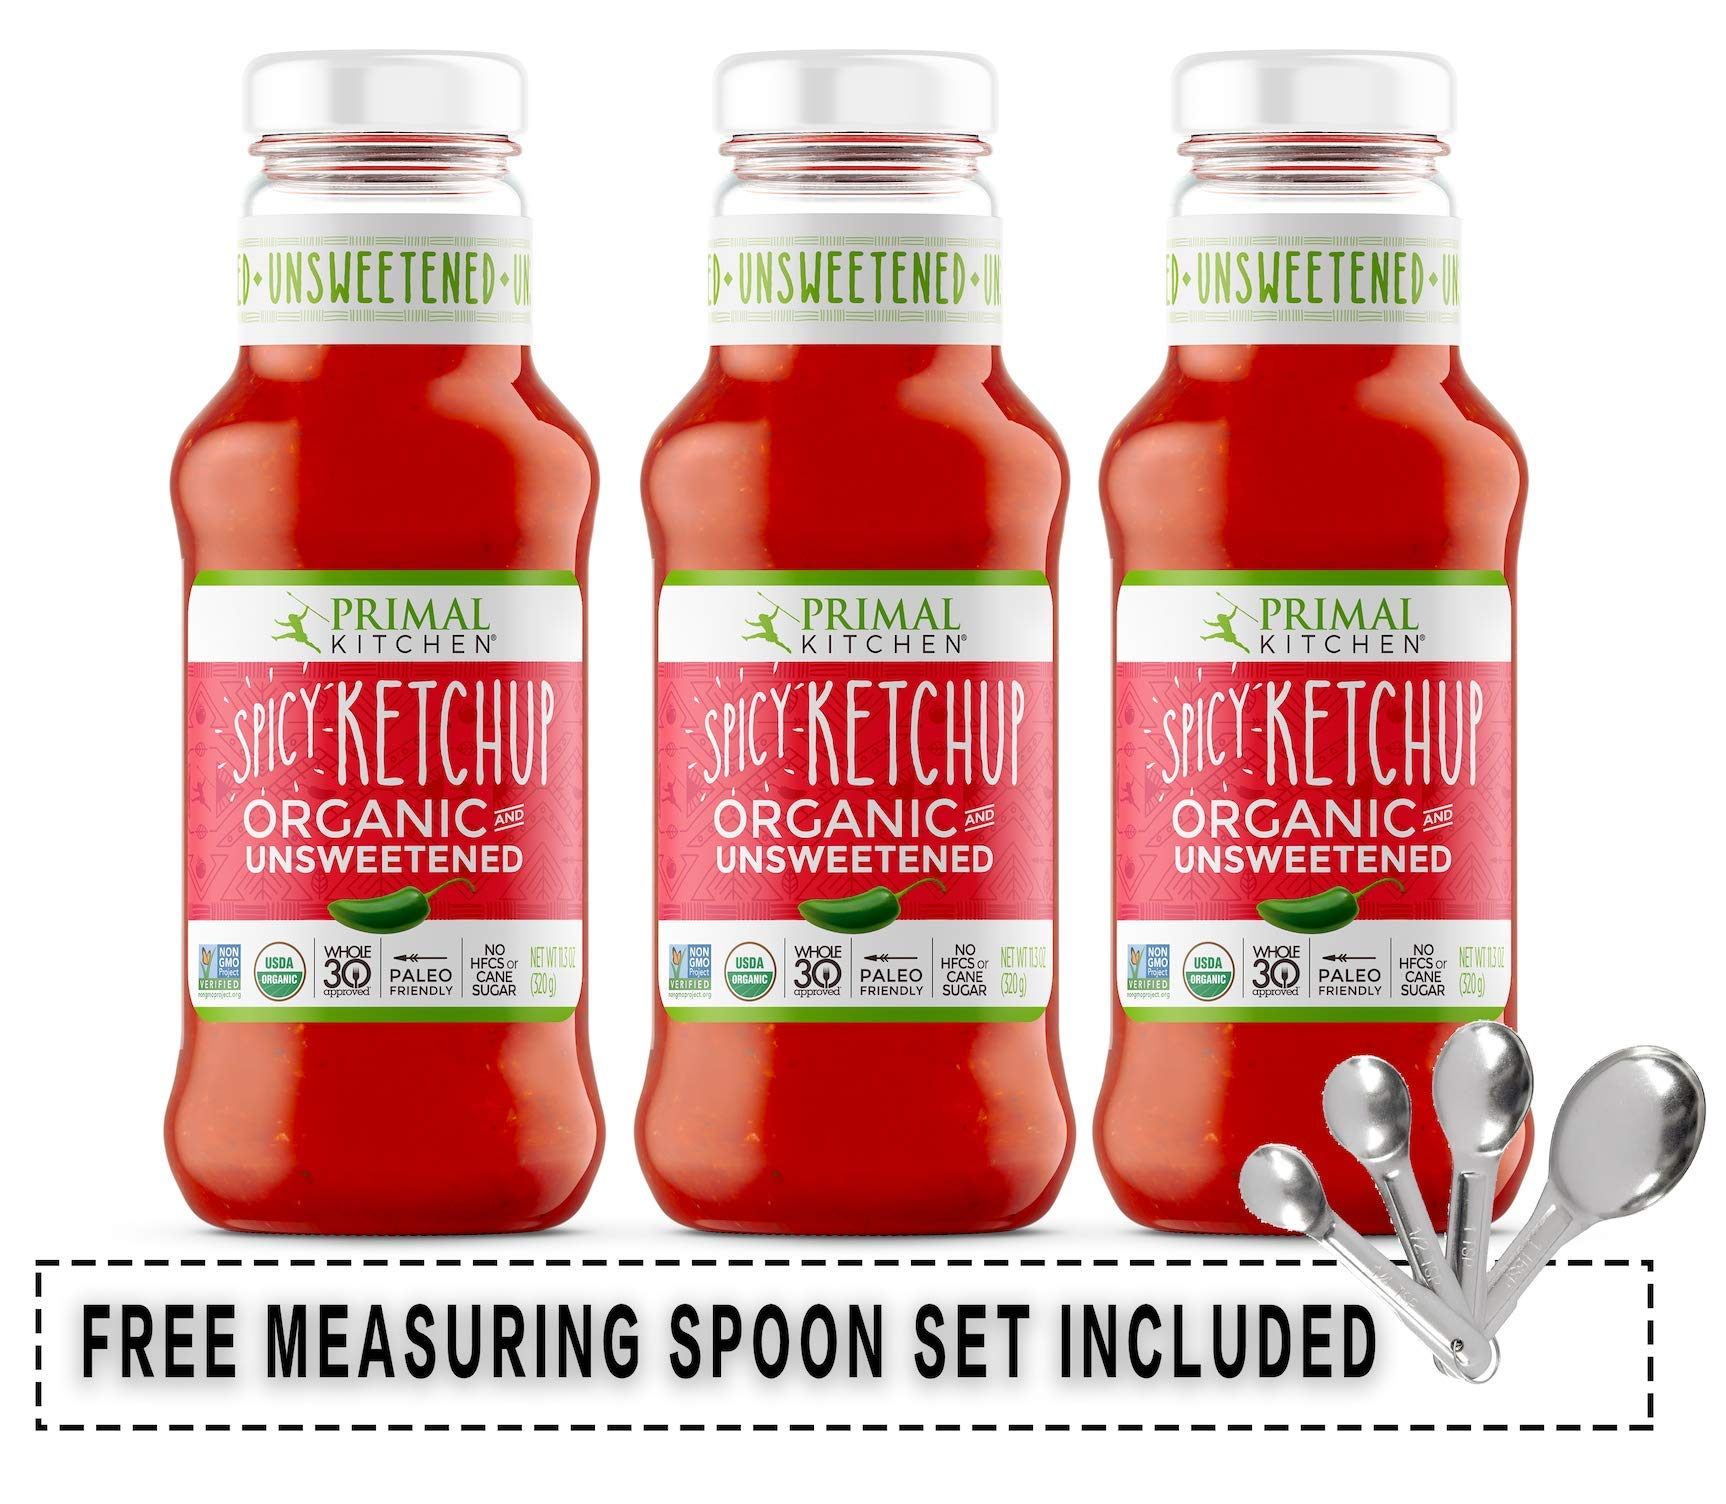 Primal Kitchen Organic Spicy Unsweetened Ketchup Usda Organic Whole 30 Paleo Gluten Free Non Gmo Keto Friendly 11 3 Fl Oz Pack Of 3 W Free Measuring Spoon Set Buy Online In